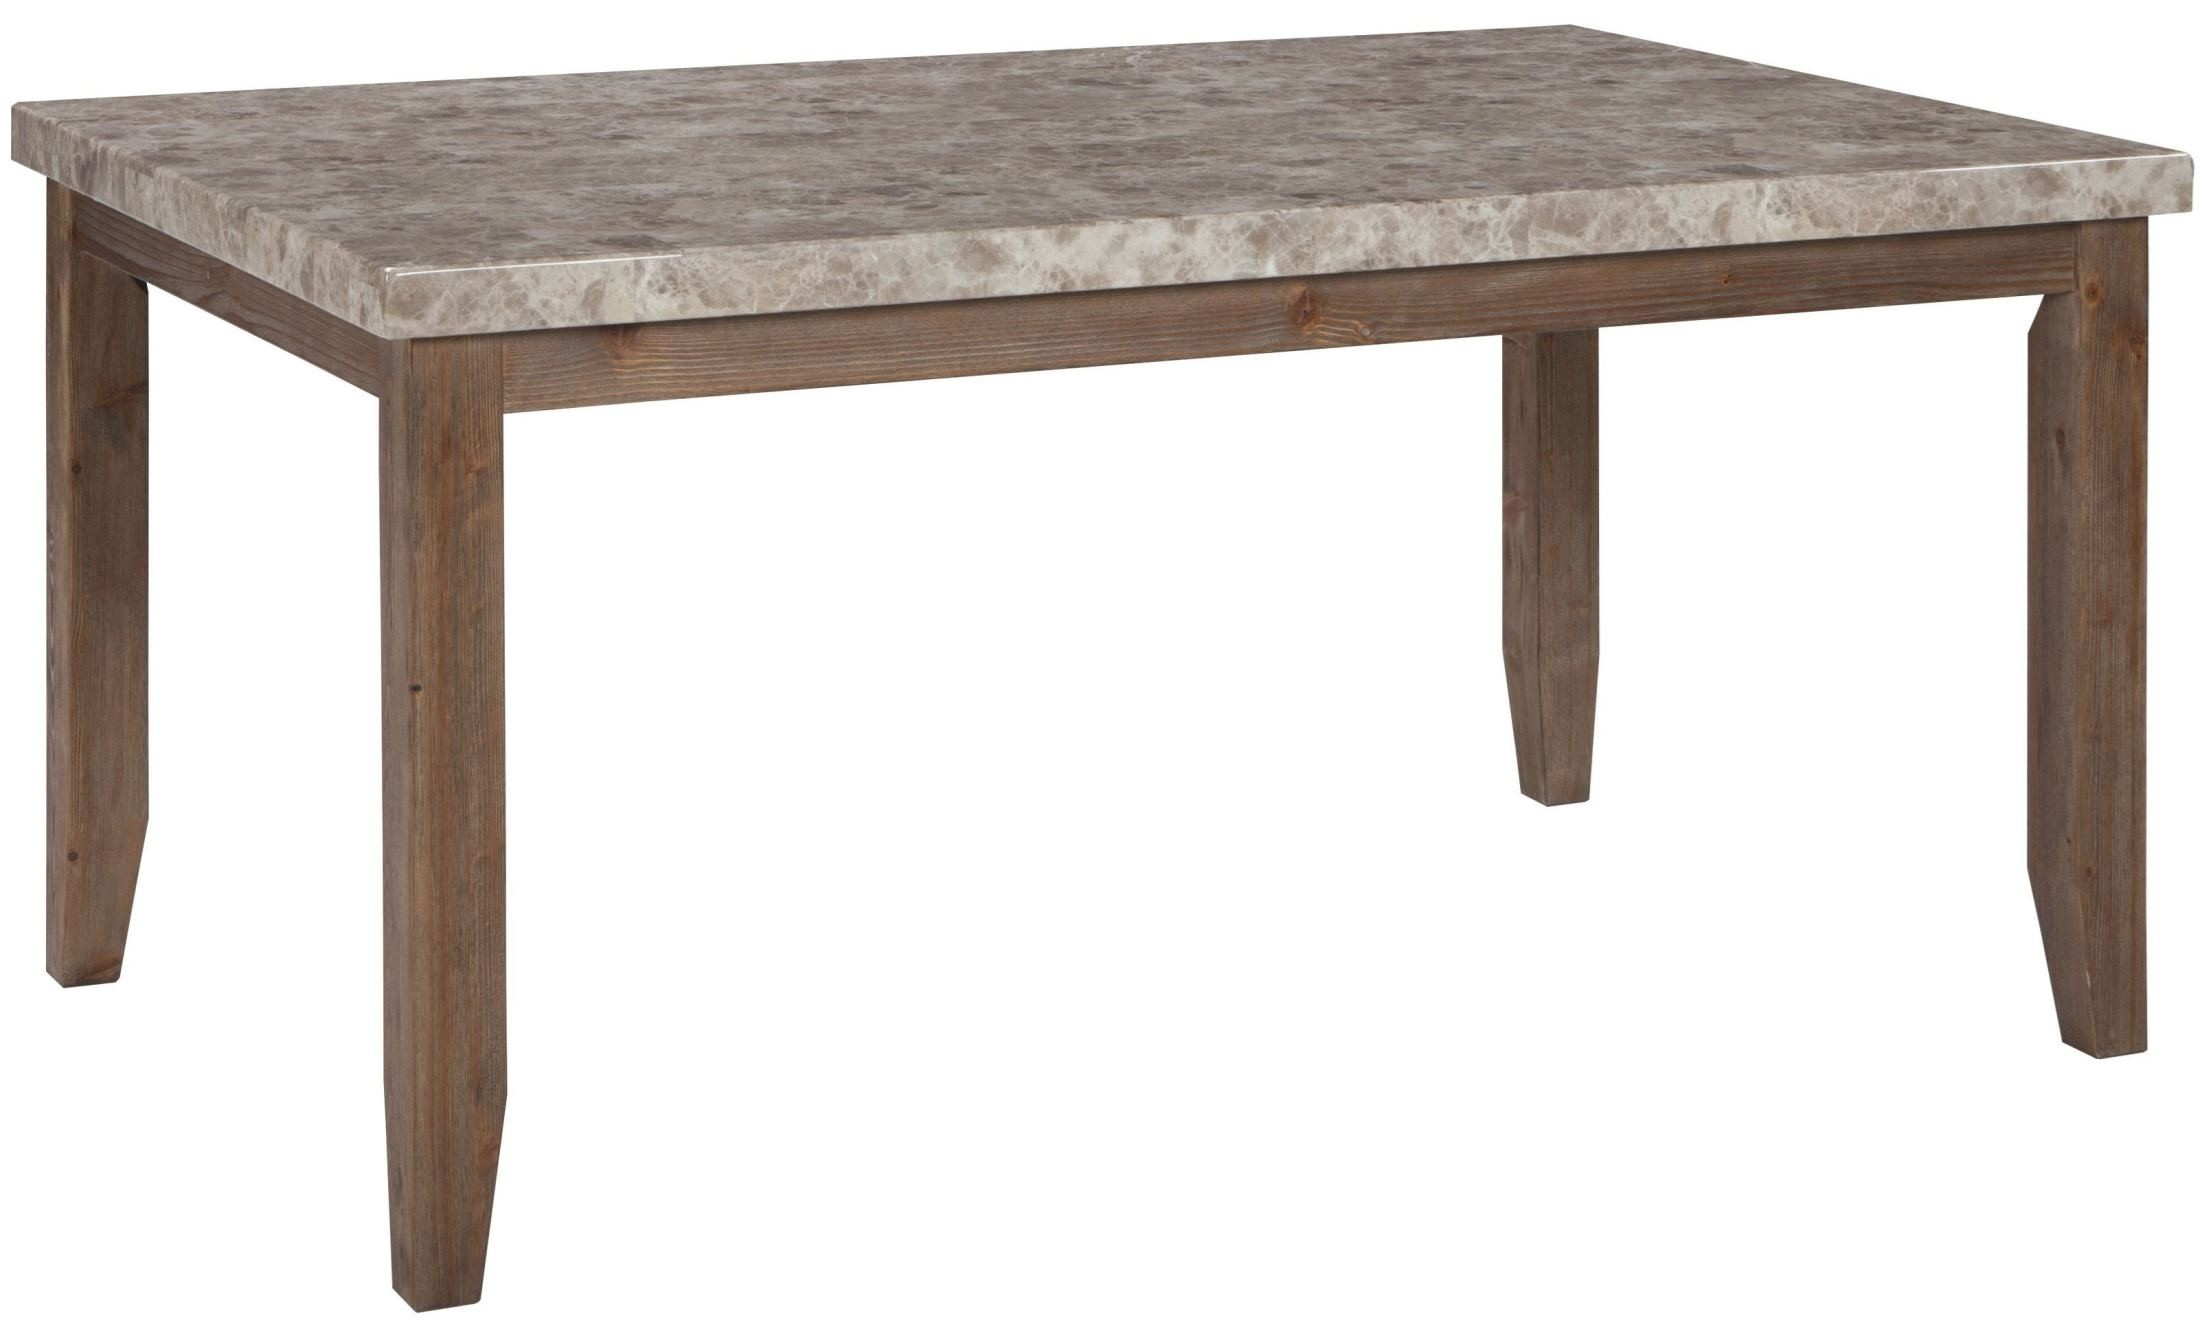 Narvilla two tone rectangular dining room table d559 25 for Dining room table for 2